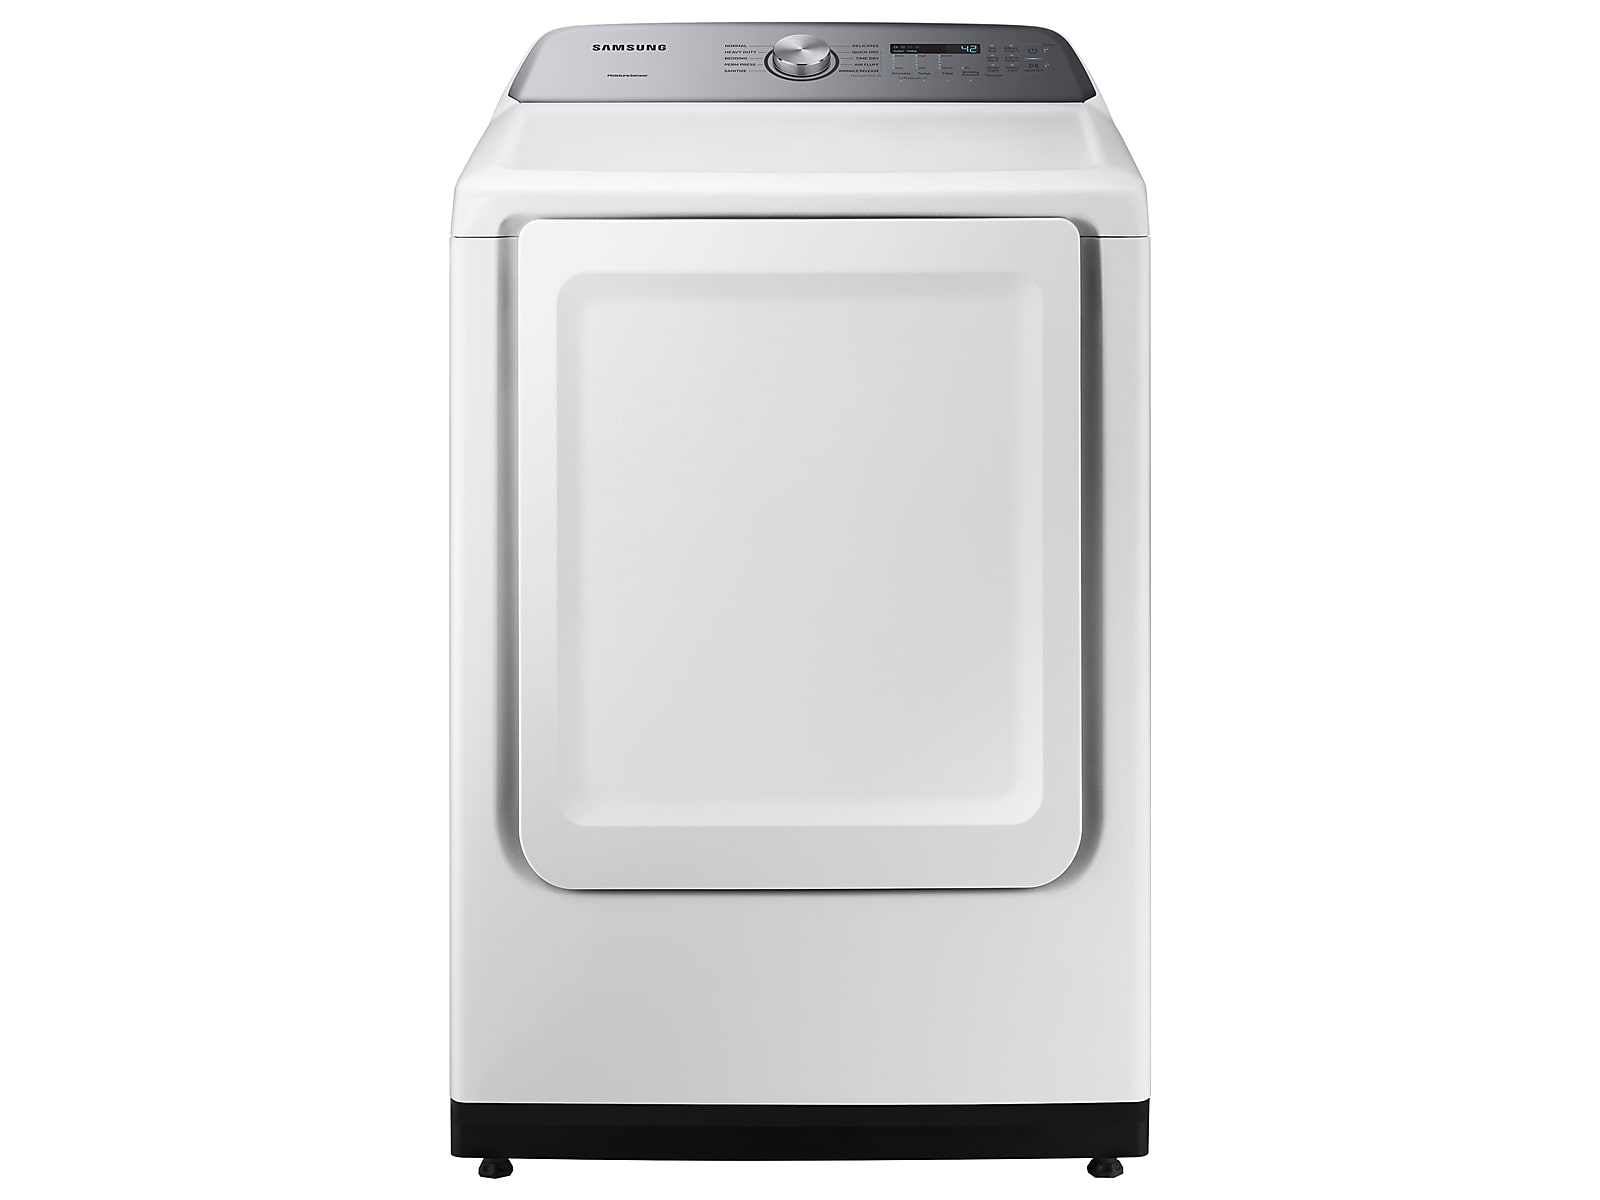 Samsung coupon: Samsung 7.4 cu. ft. Electric Dryer with Sensor Dry in White(DVE50R5200W/A3)